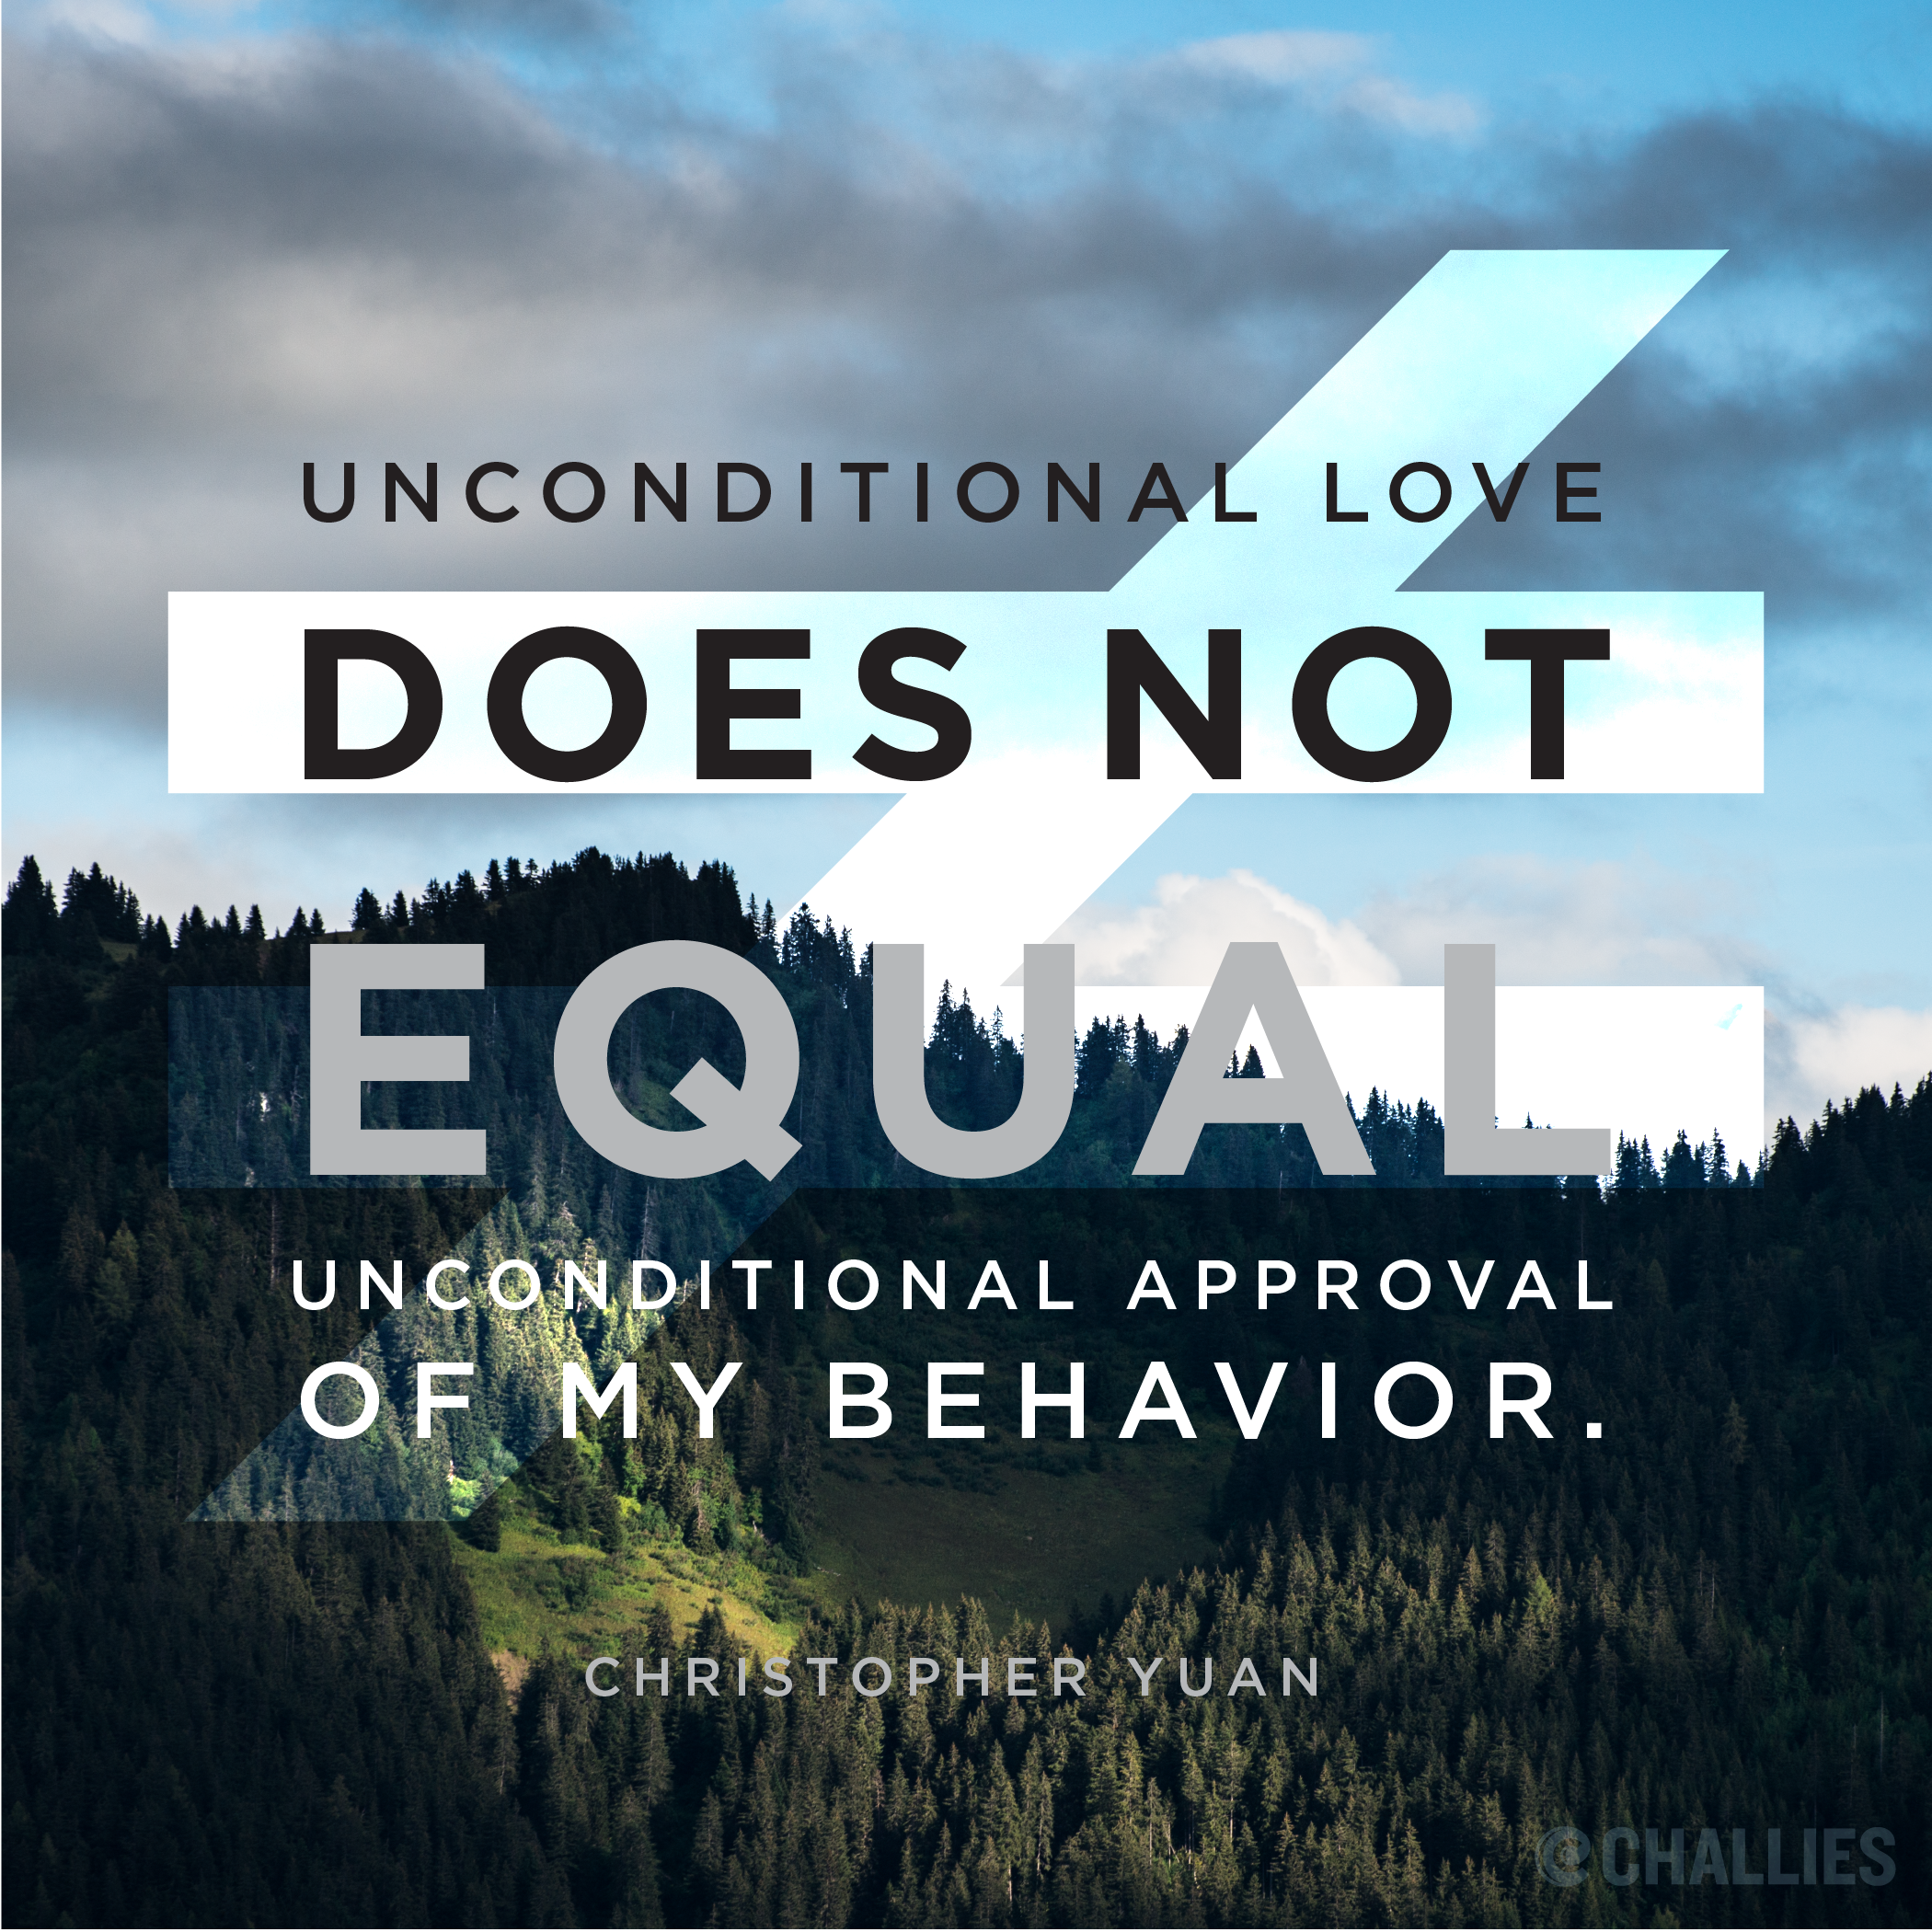 Christian Love Quotes For Him Unconditional Love Does Not Equal Unconditional Approval Of My